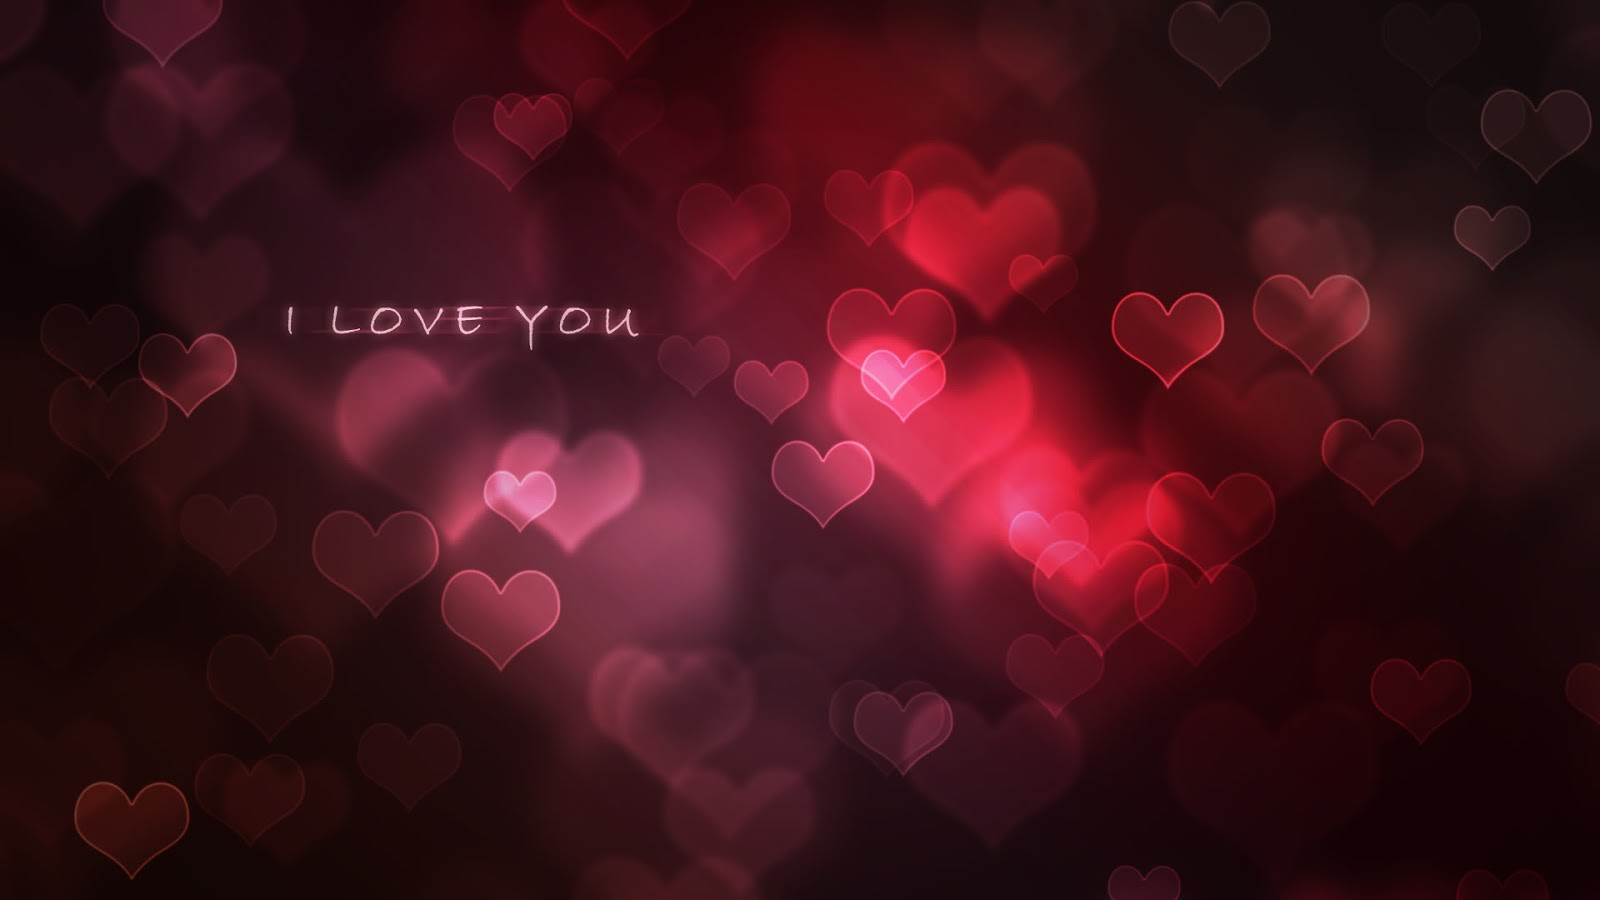 Love You ILU Pictures Photos and HD wallpapers 2016 1600x900